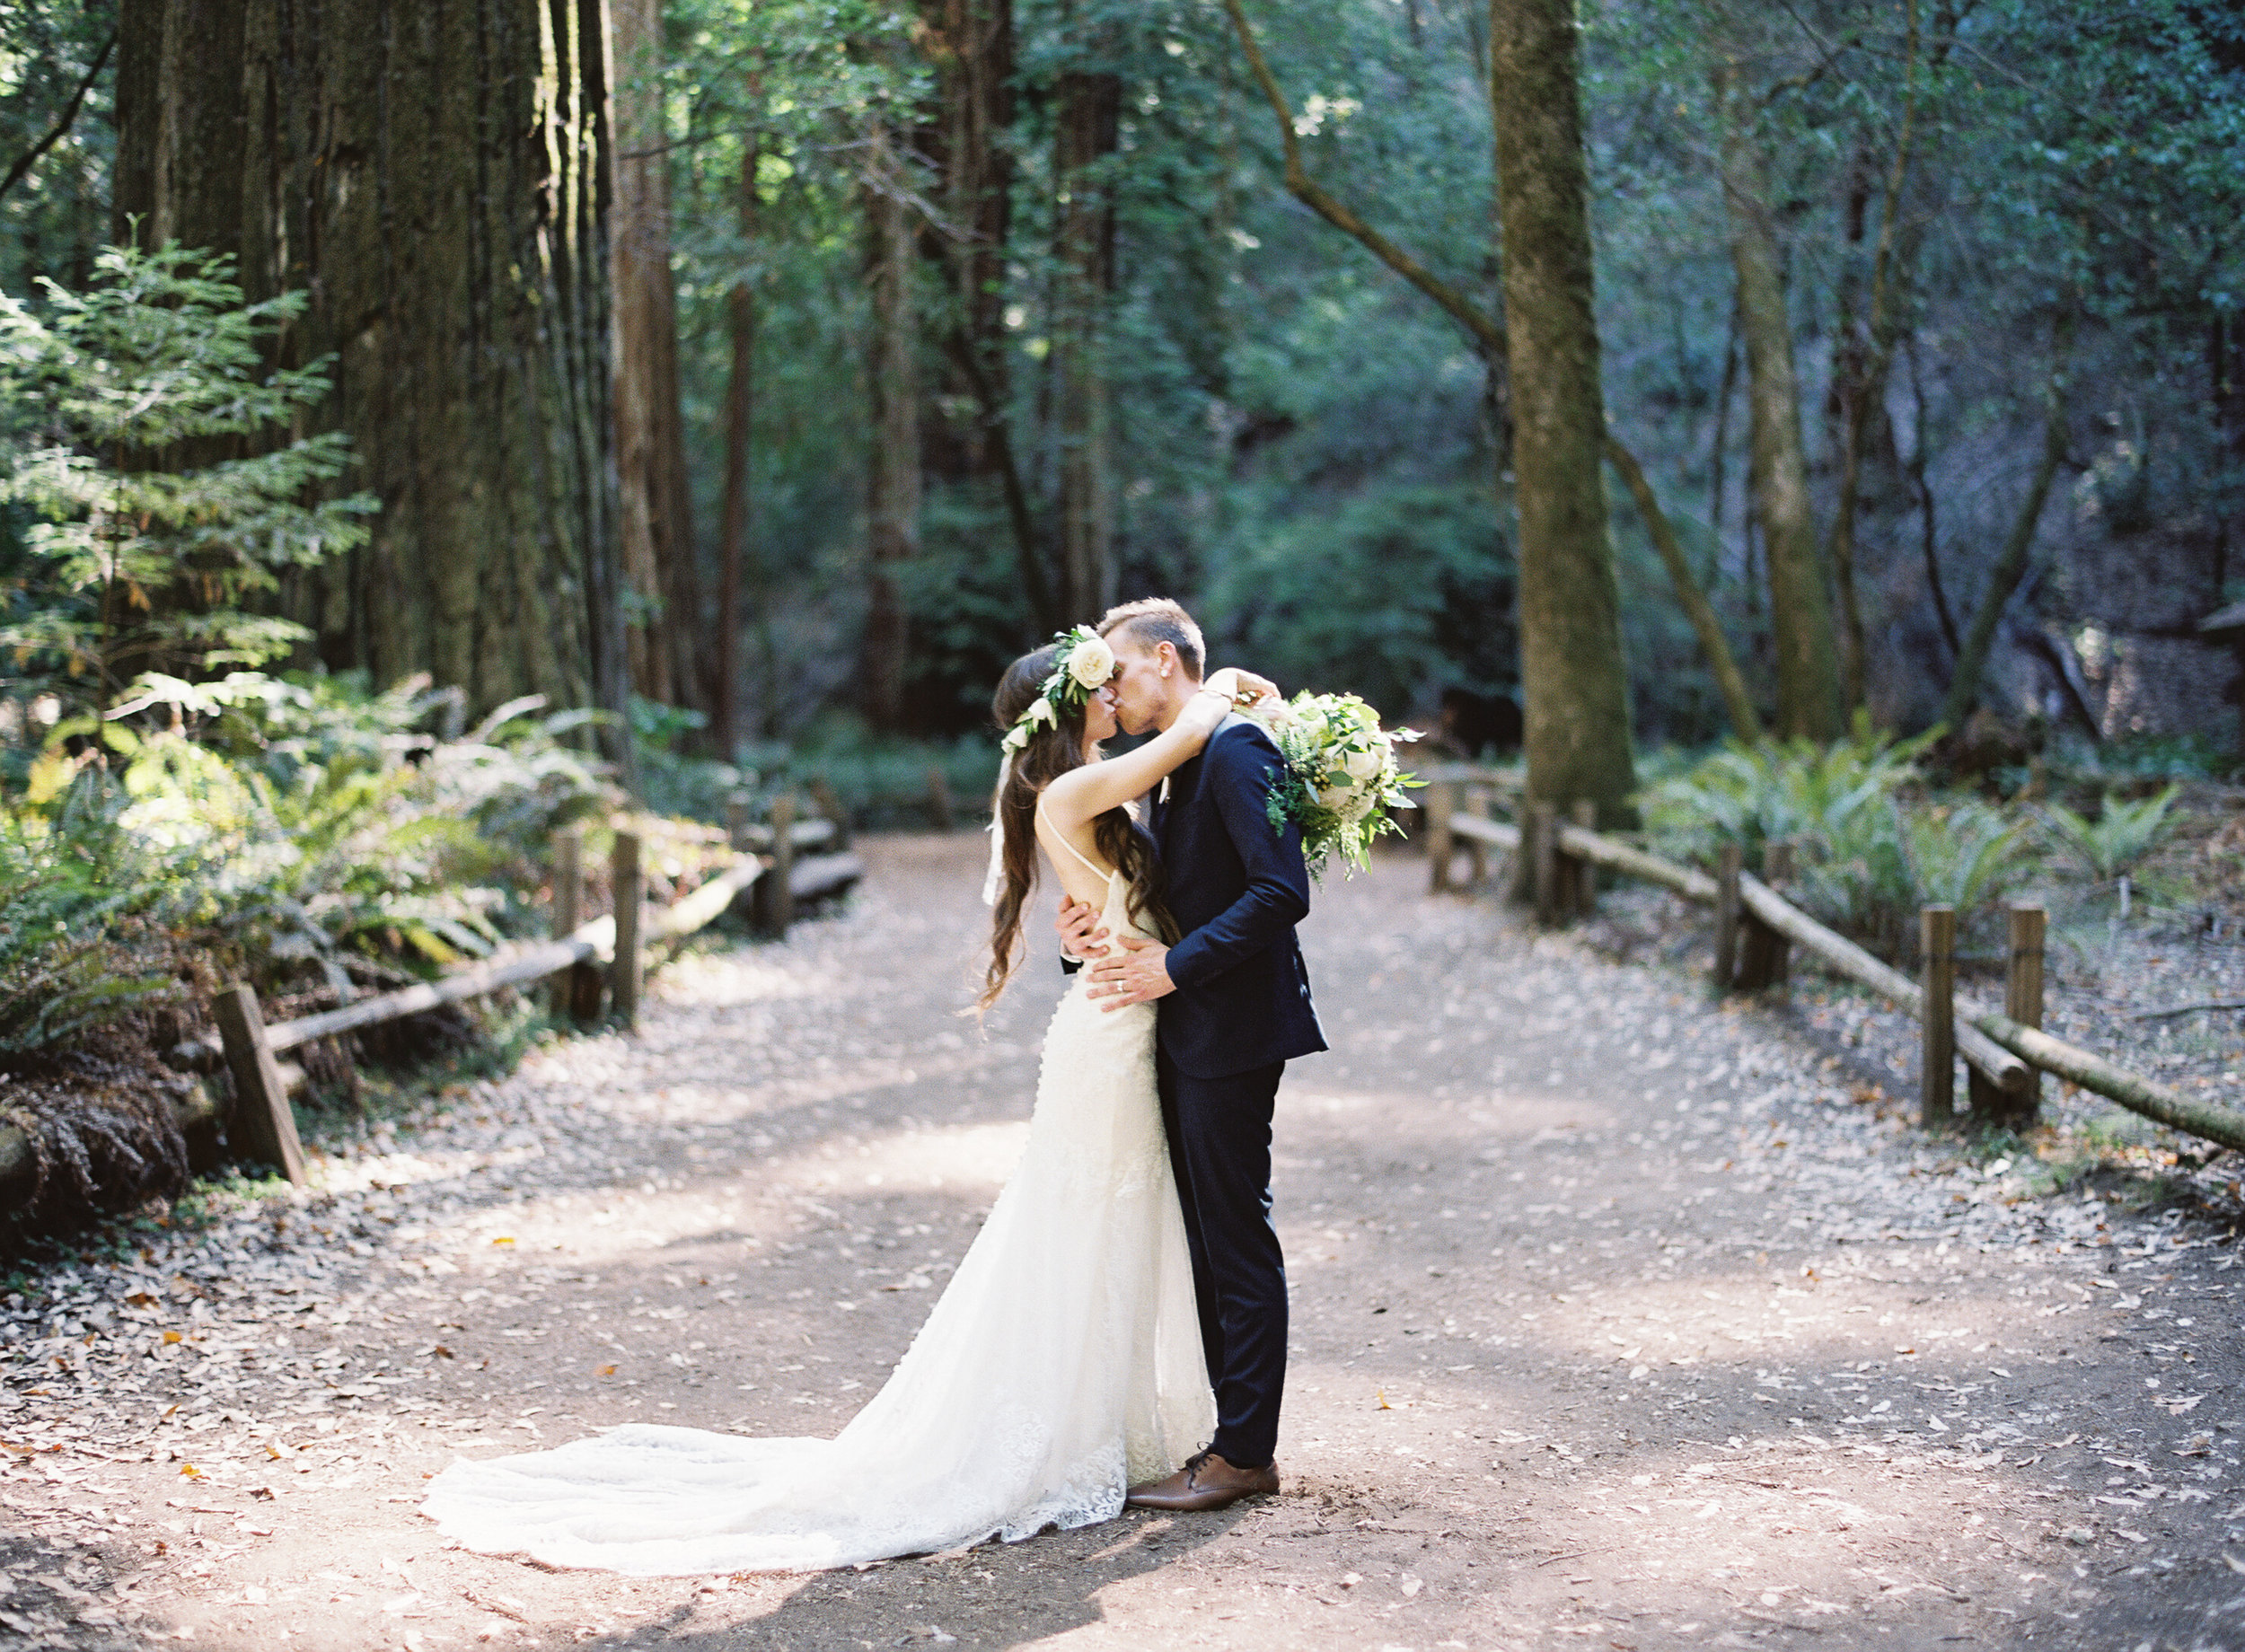 Meghan Mehan Photography | California Wedding Photographer | Napa California Wedding Photographer 100.jpg